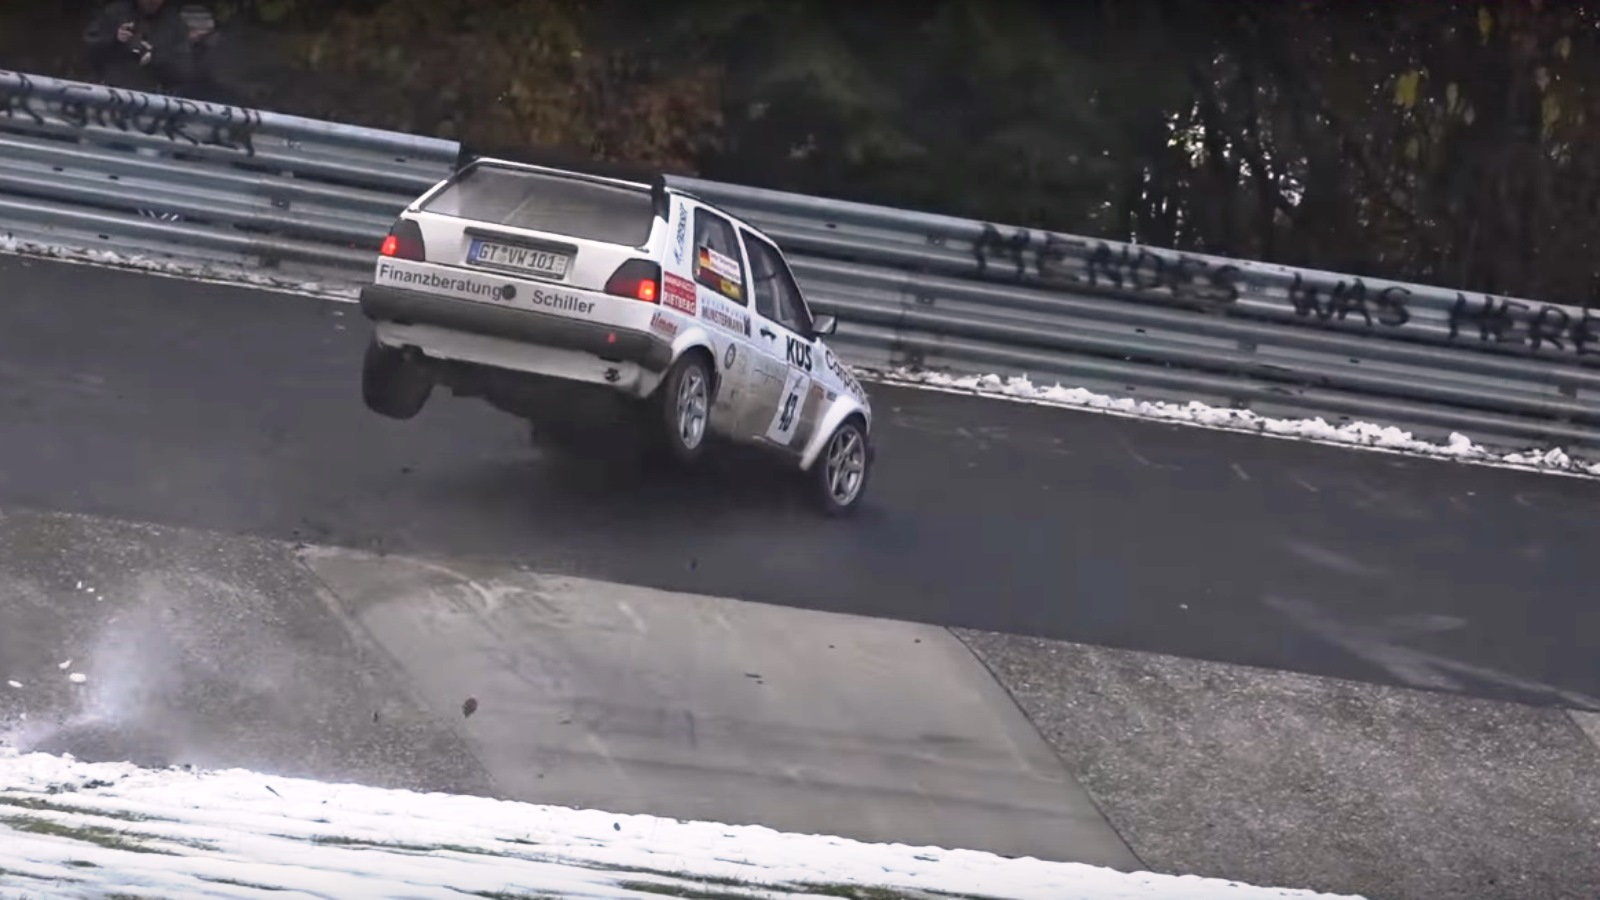 Nürburgring Tries to Kill All the Golfers